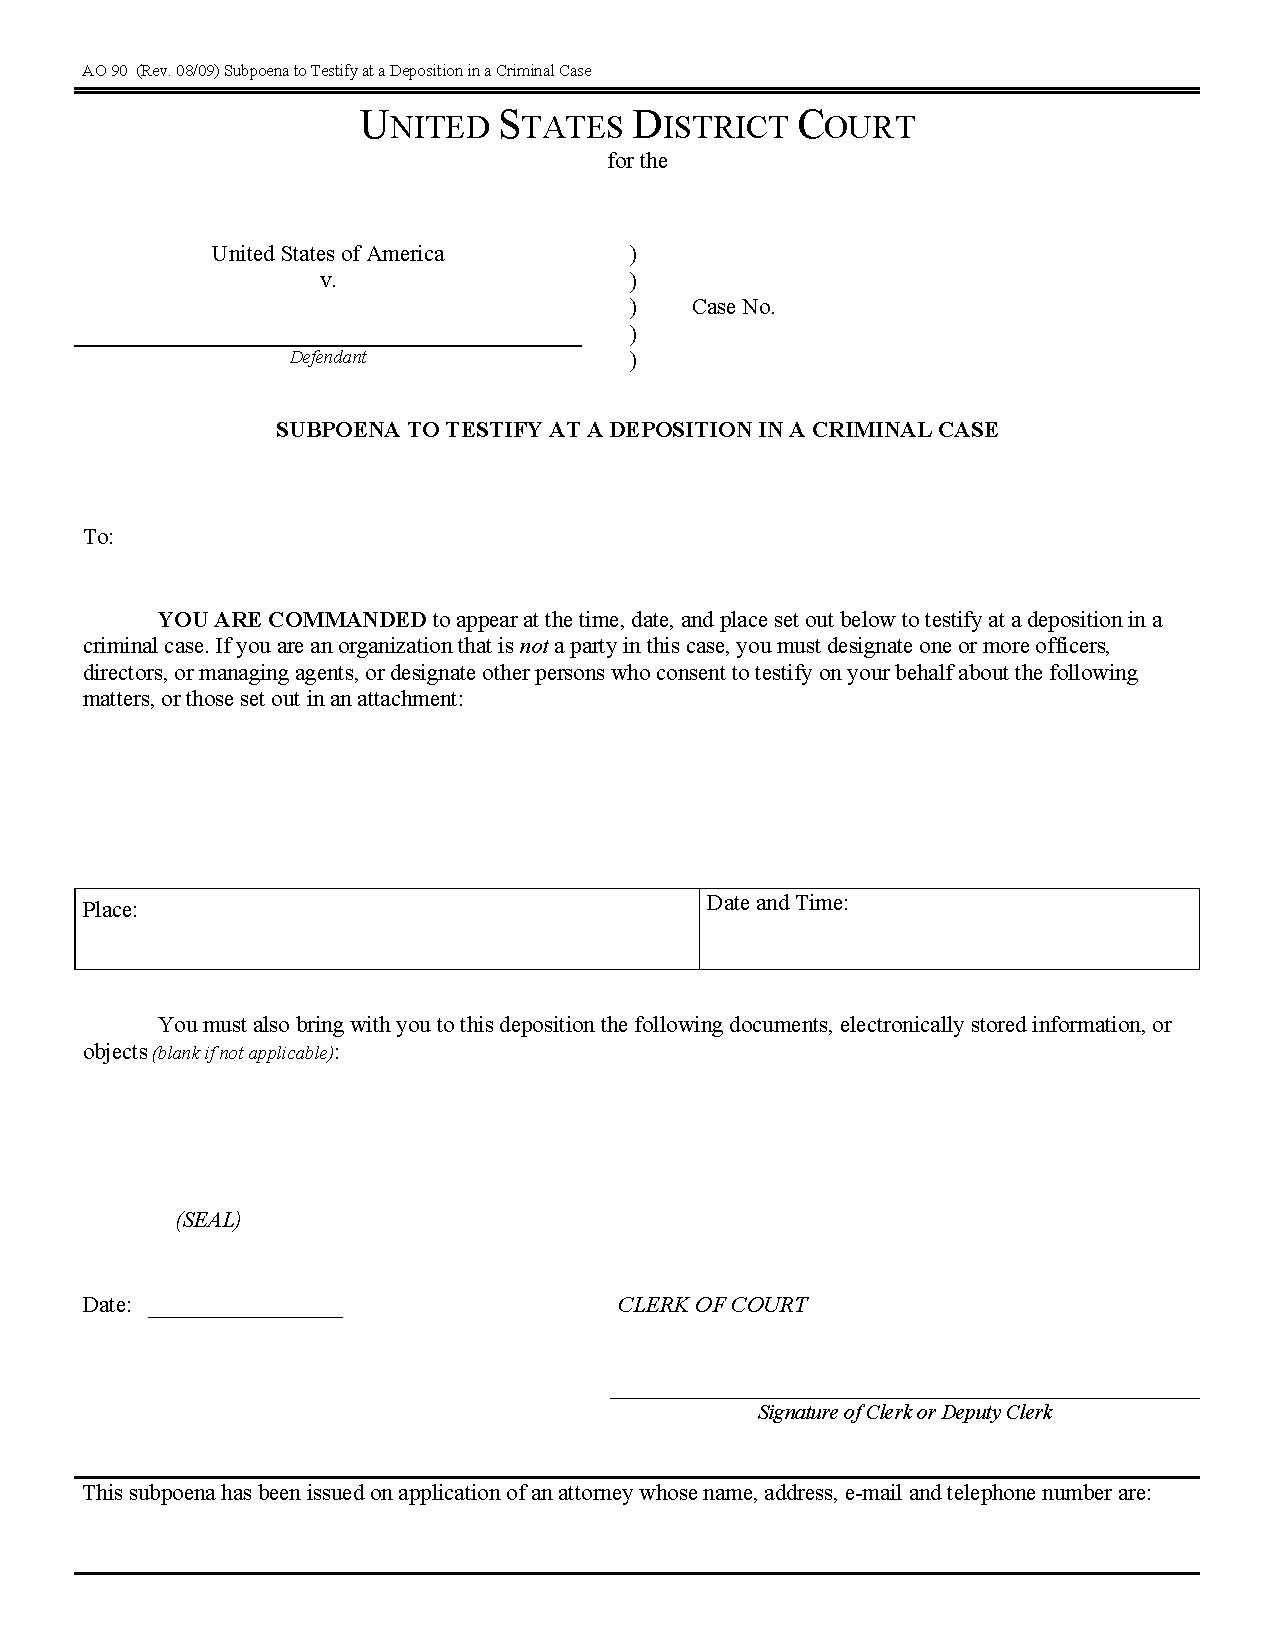 Form AO 090 Subpoena to Testify at a Deposition in a Criminal Case